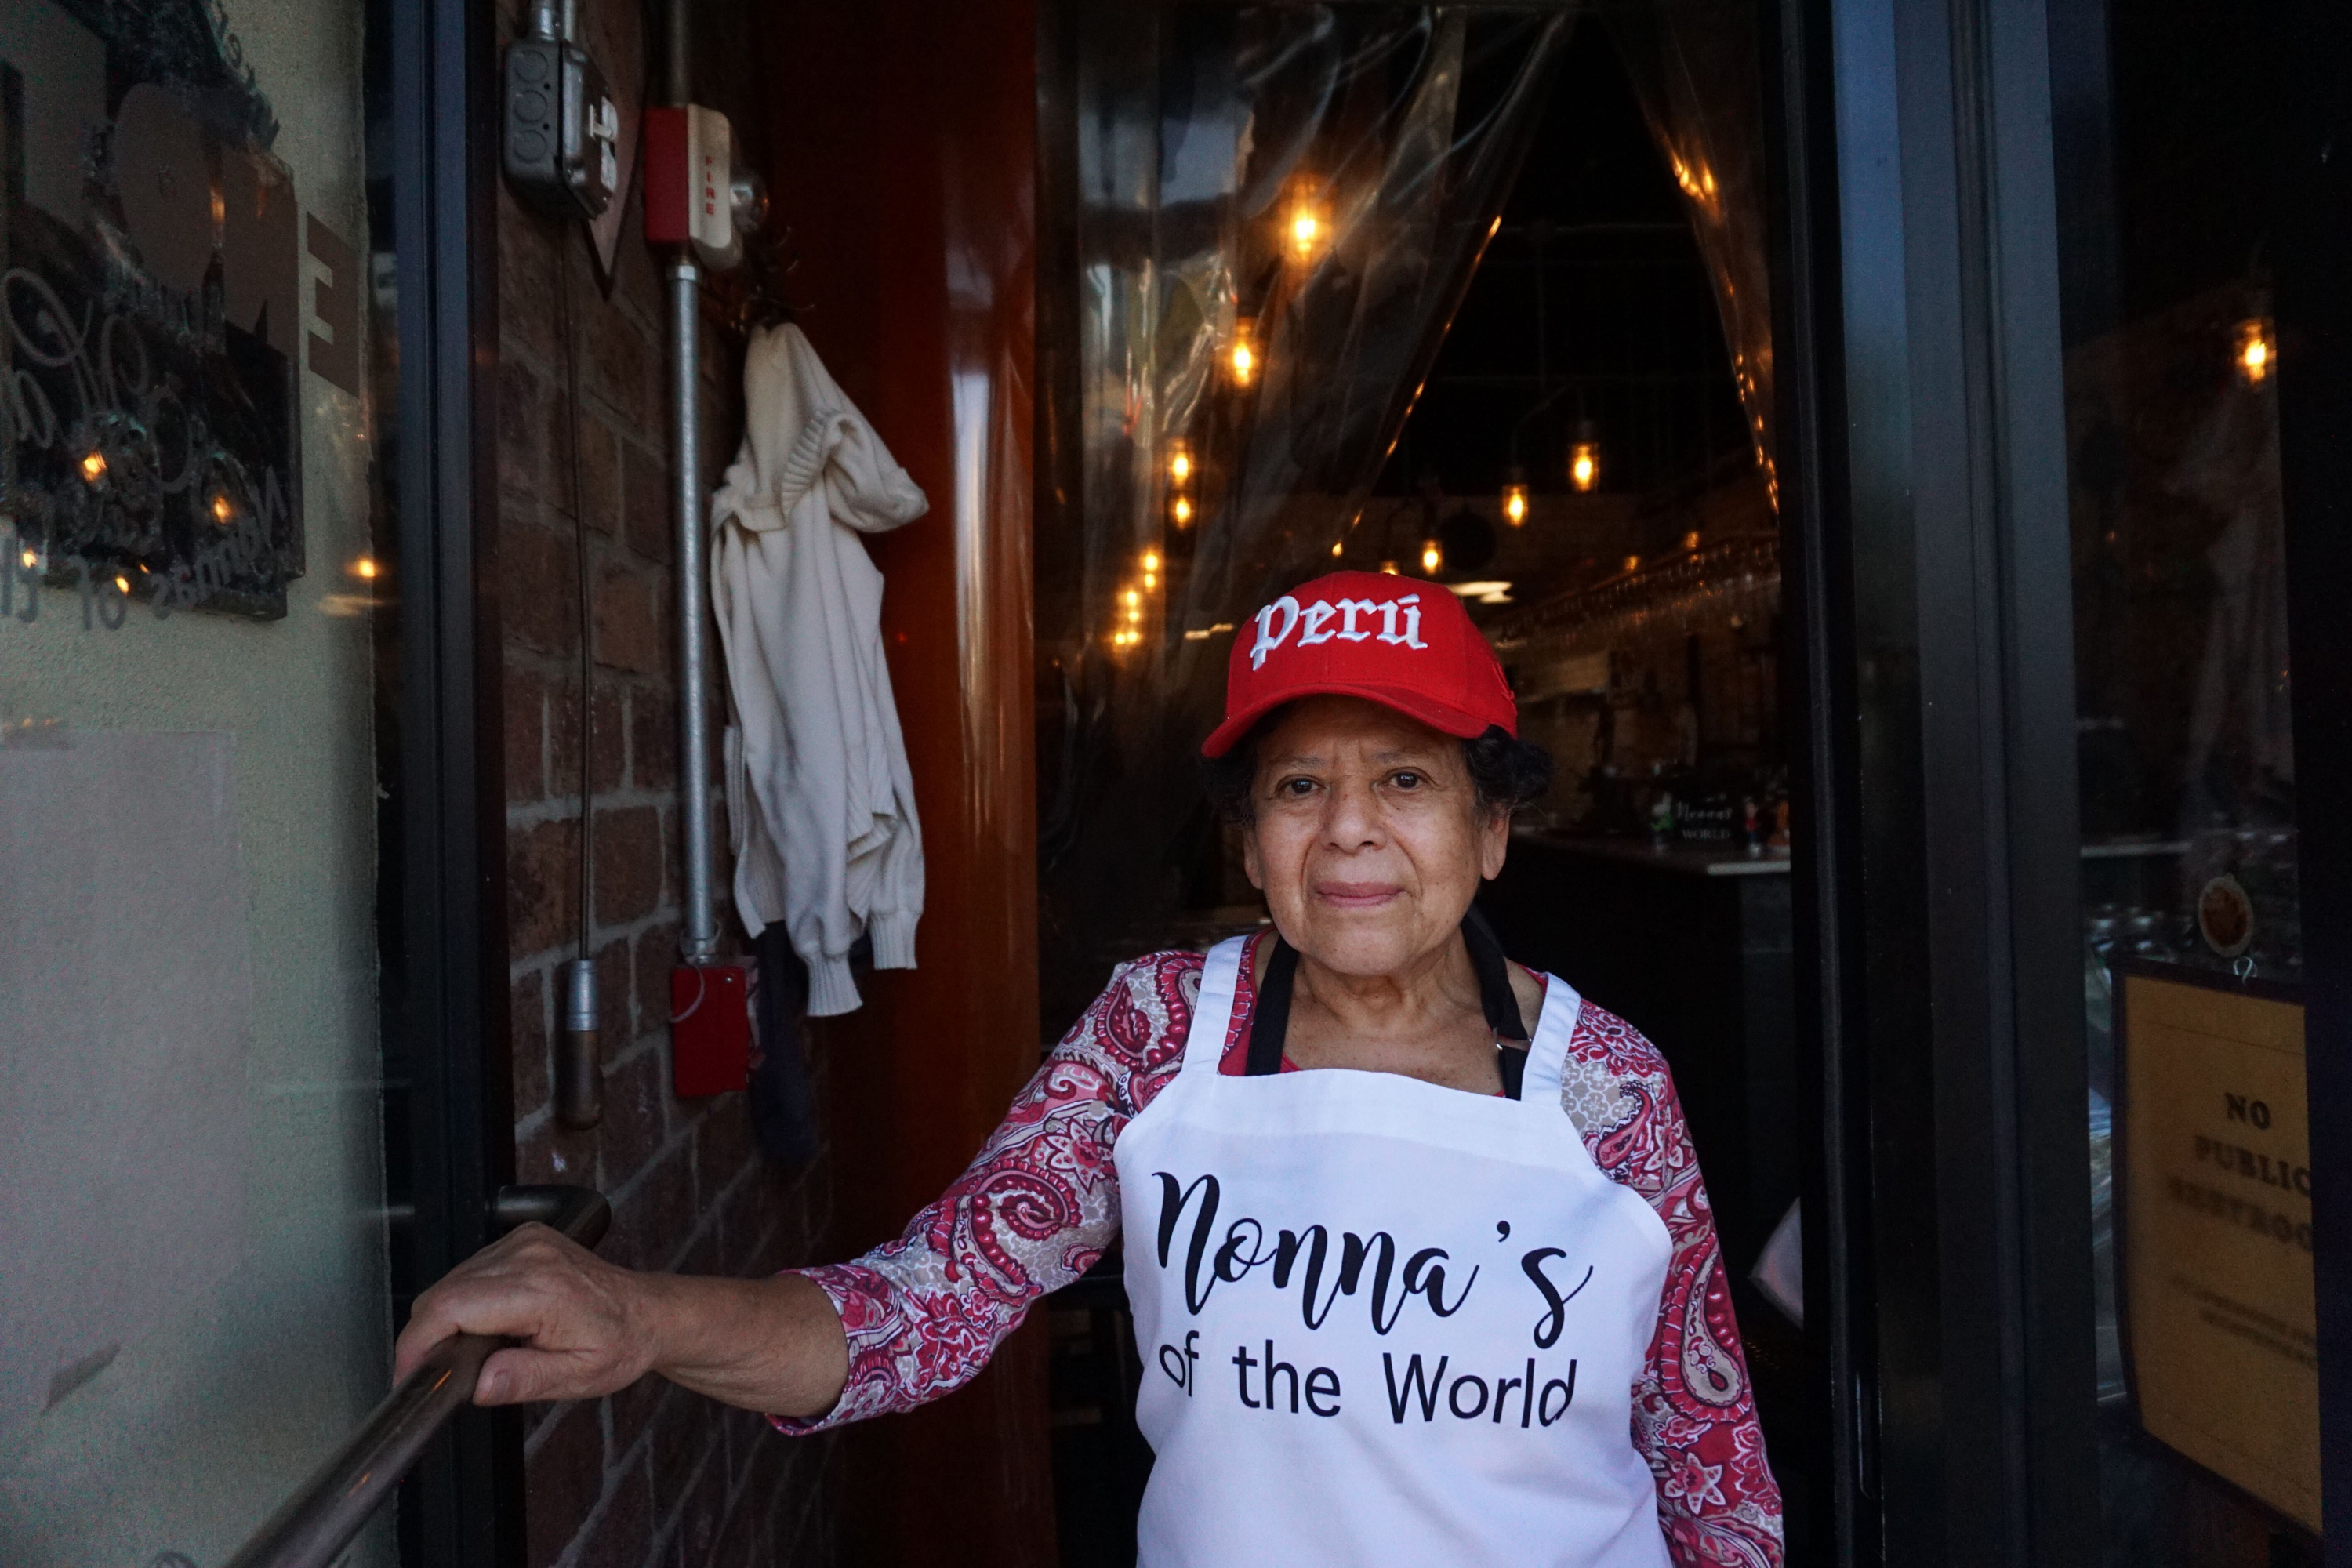 """Rosa Correa, a 77-year-old """"nonna"""" originally from Peru, stands outside Enoteca Maria after making sauces for the restaurant to sell, Oct. 9, 2020."""